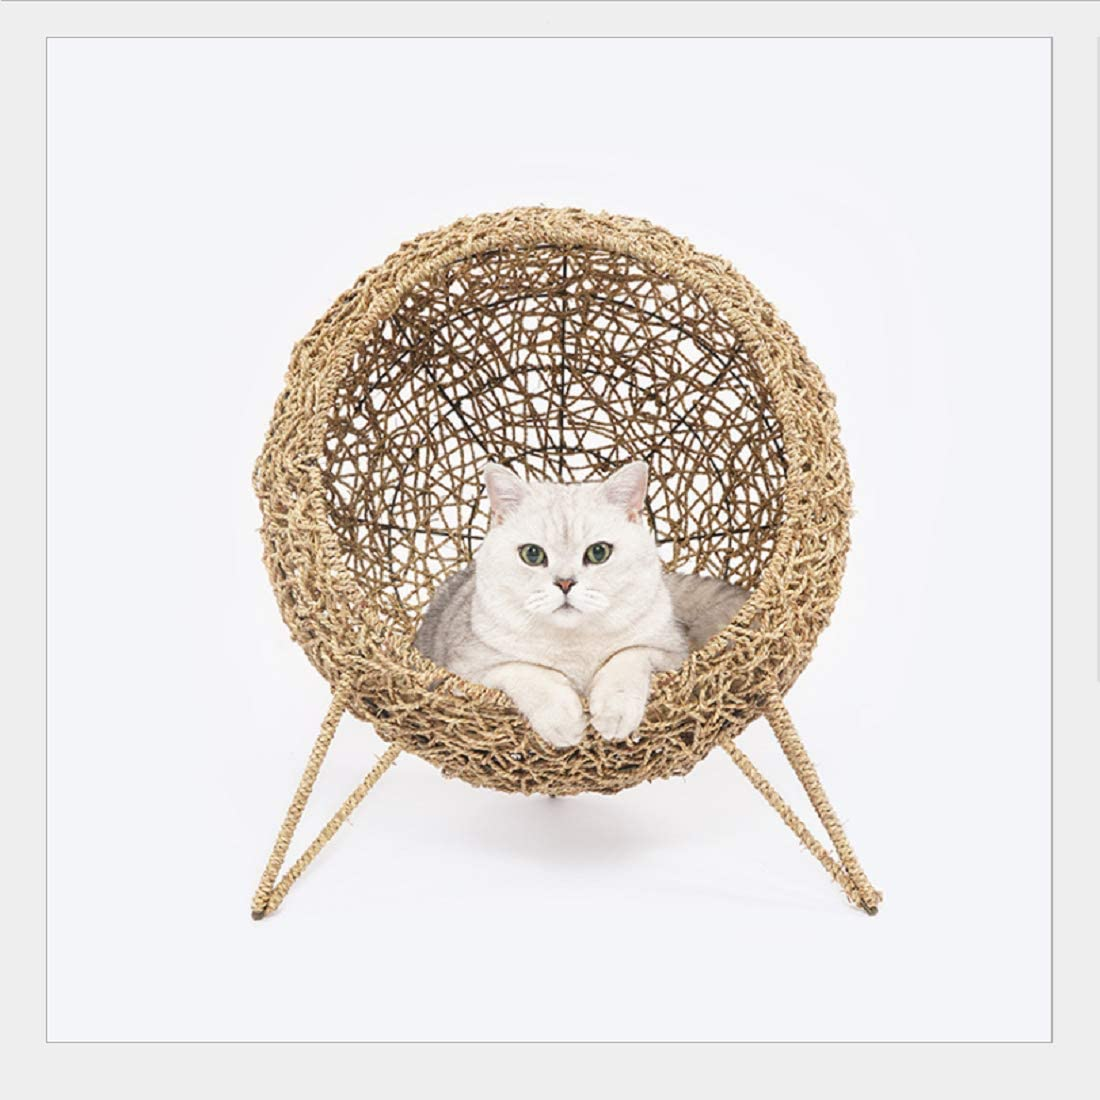 zeze Cat House Rattan Knitting Four Seasons Universal cat House Web Celebrity cat Bed cat House Knitting cat House pet Supplies